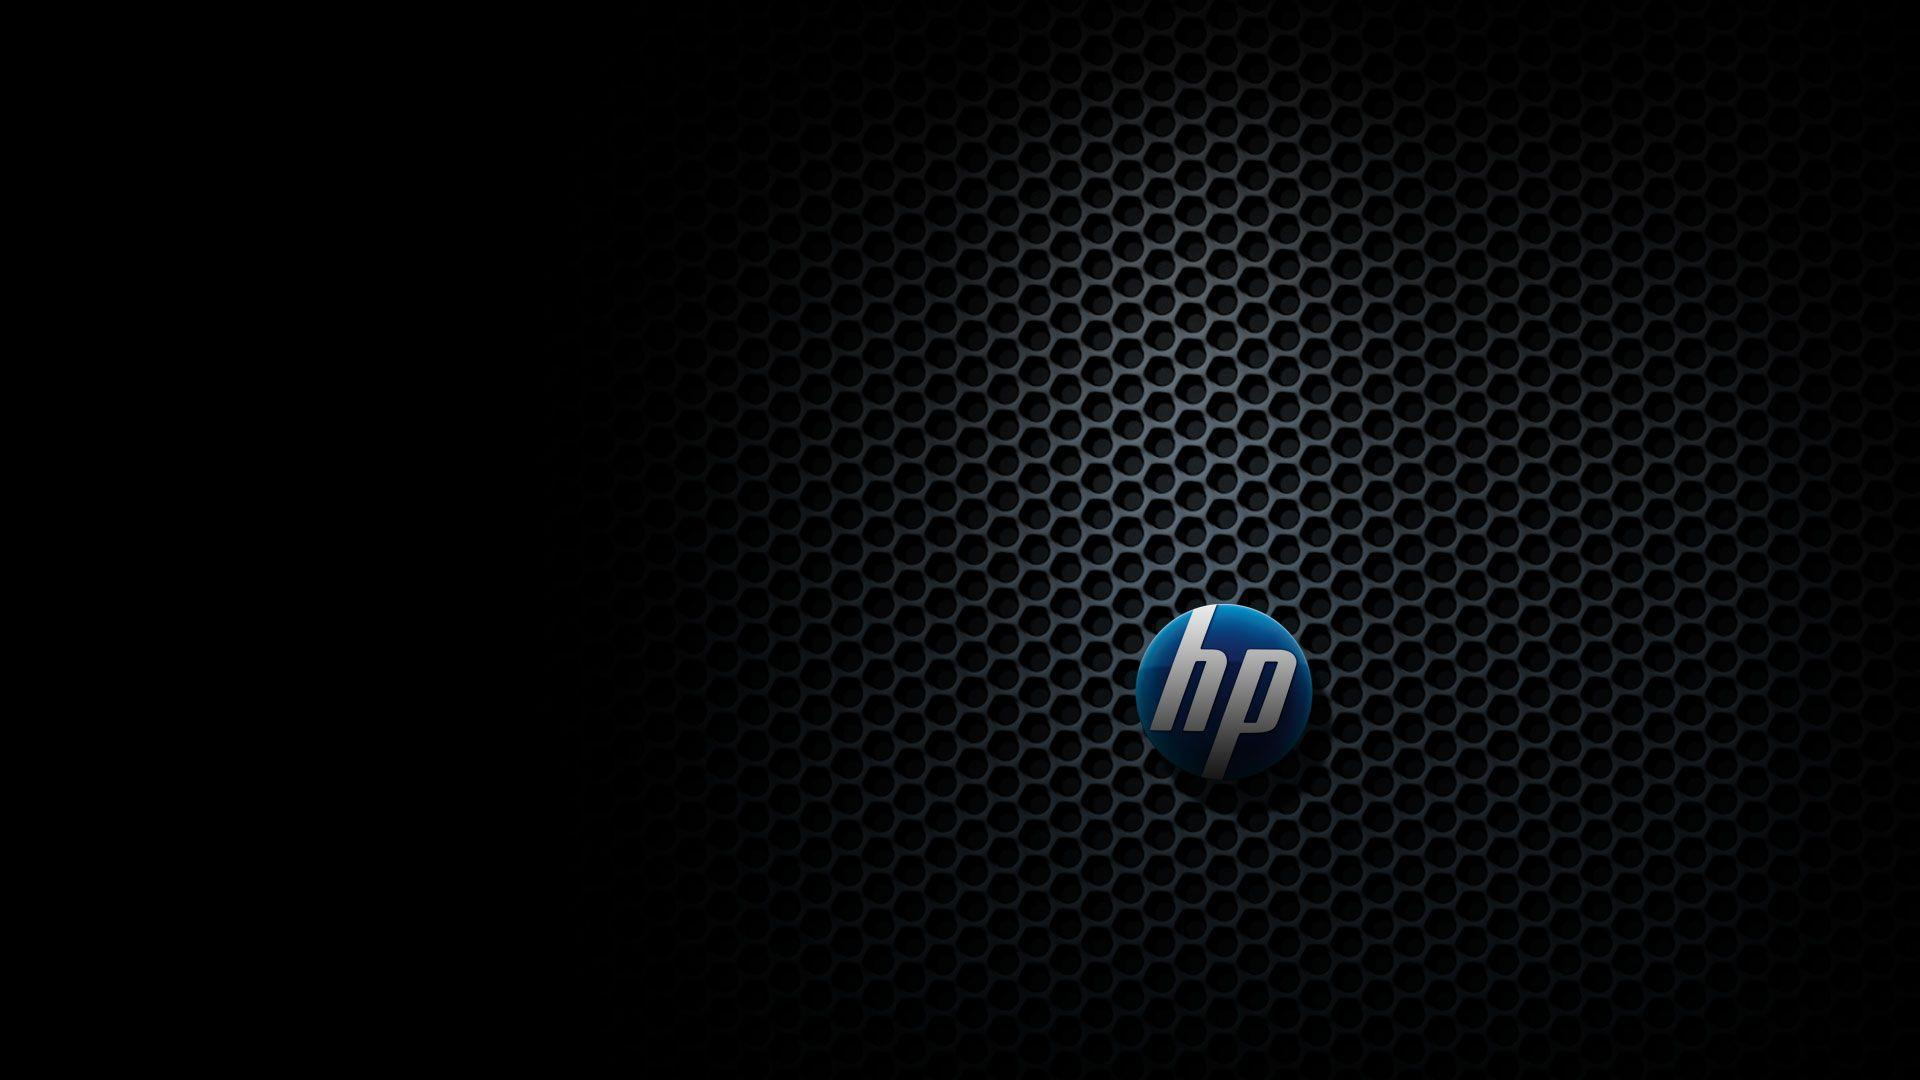 hp desktop wallpapers hd 1080p desktop backgrounds for free hd